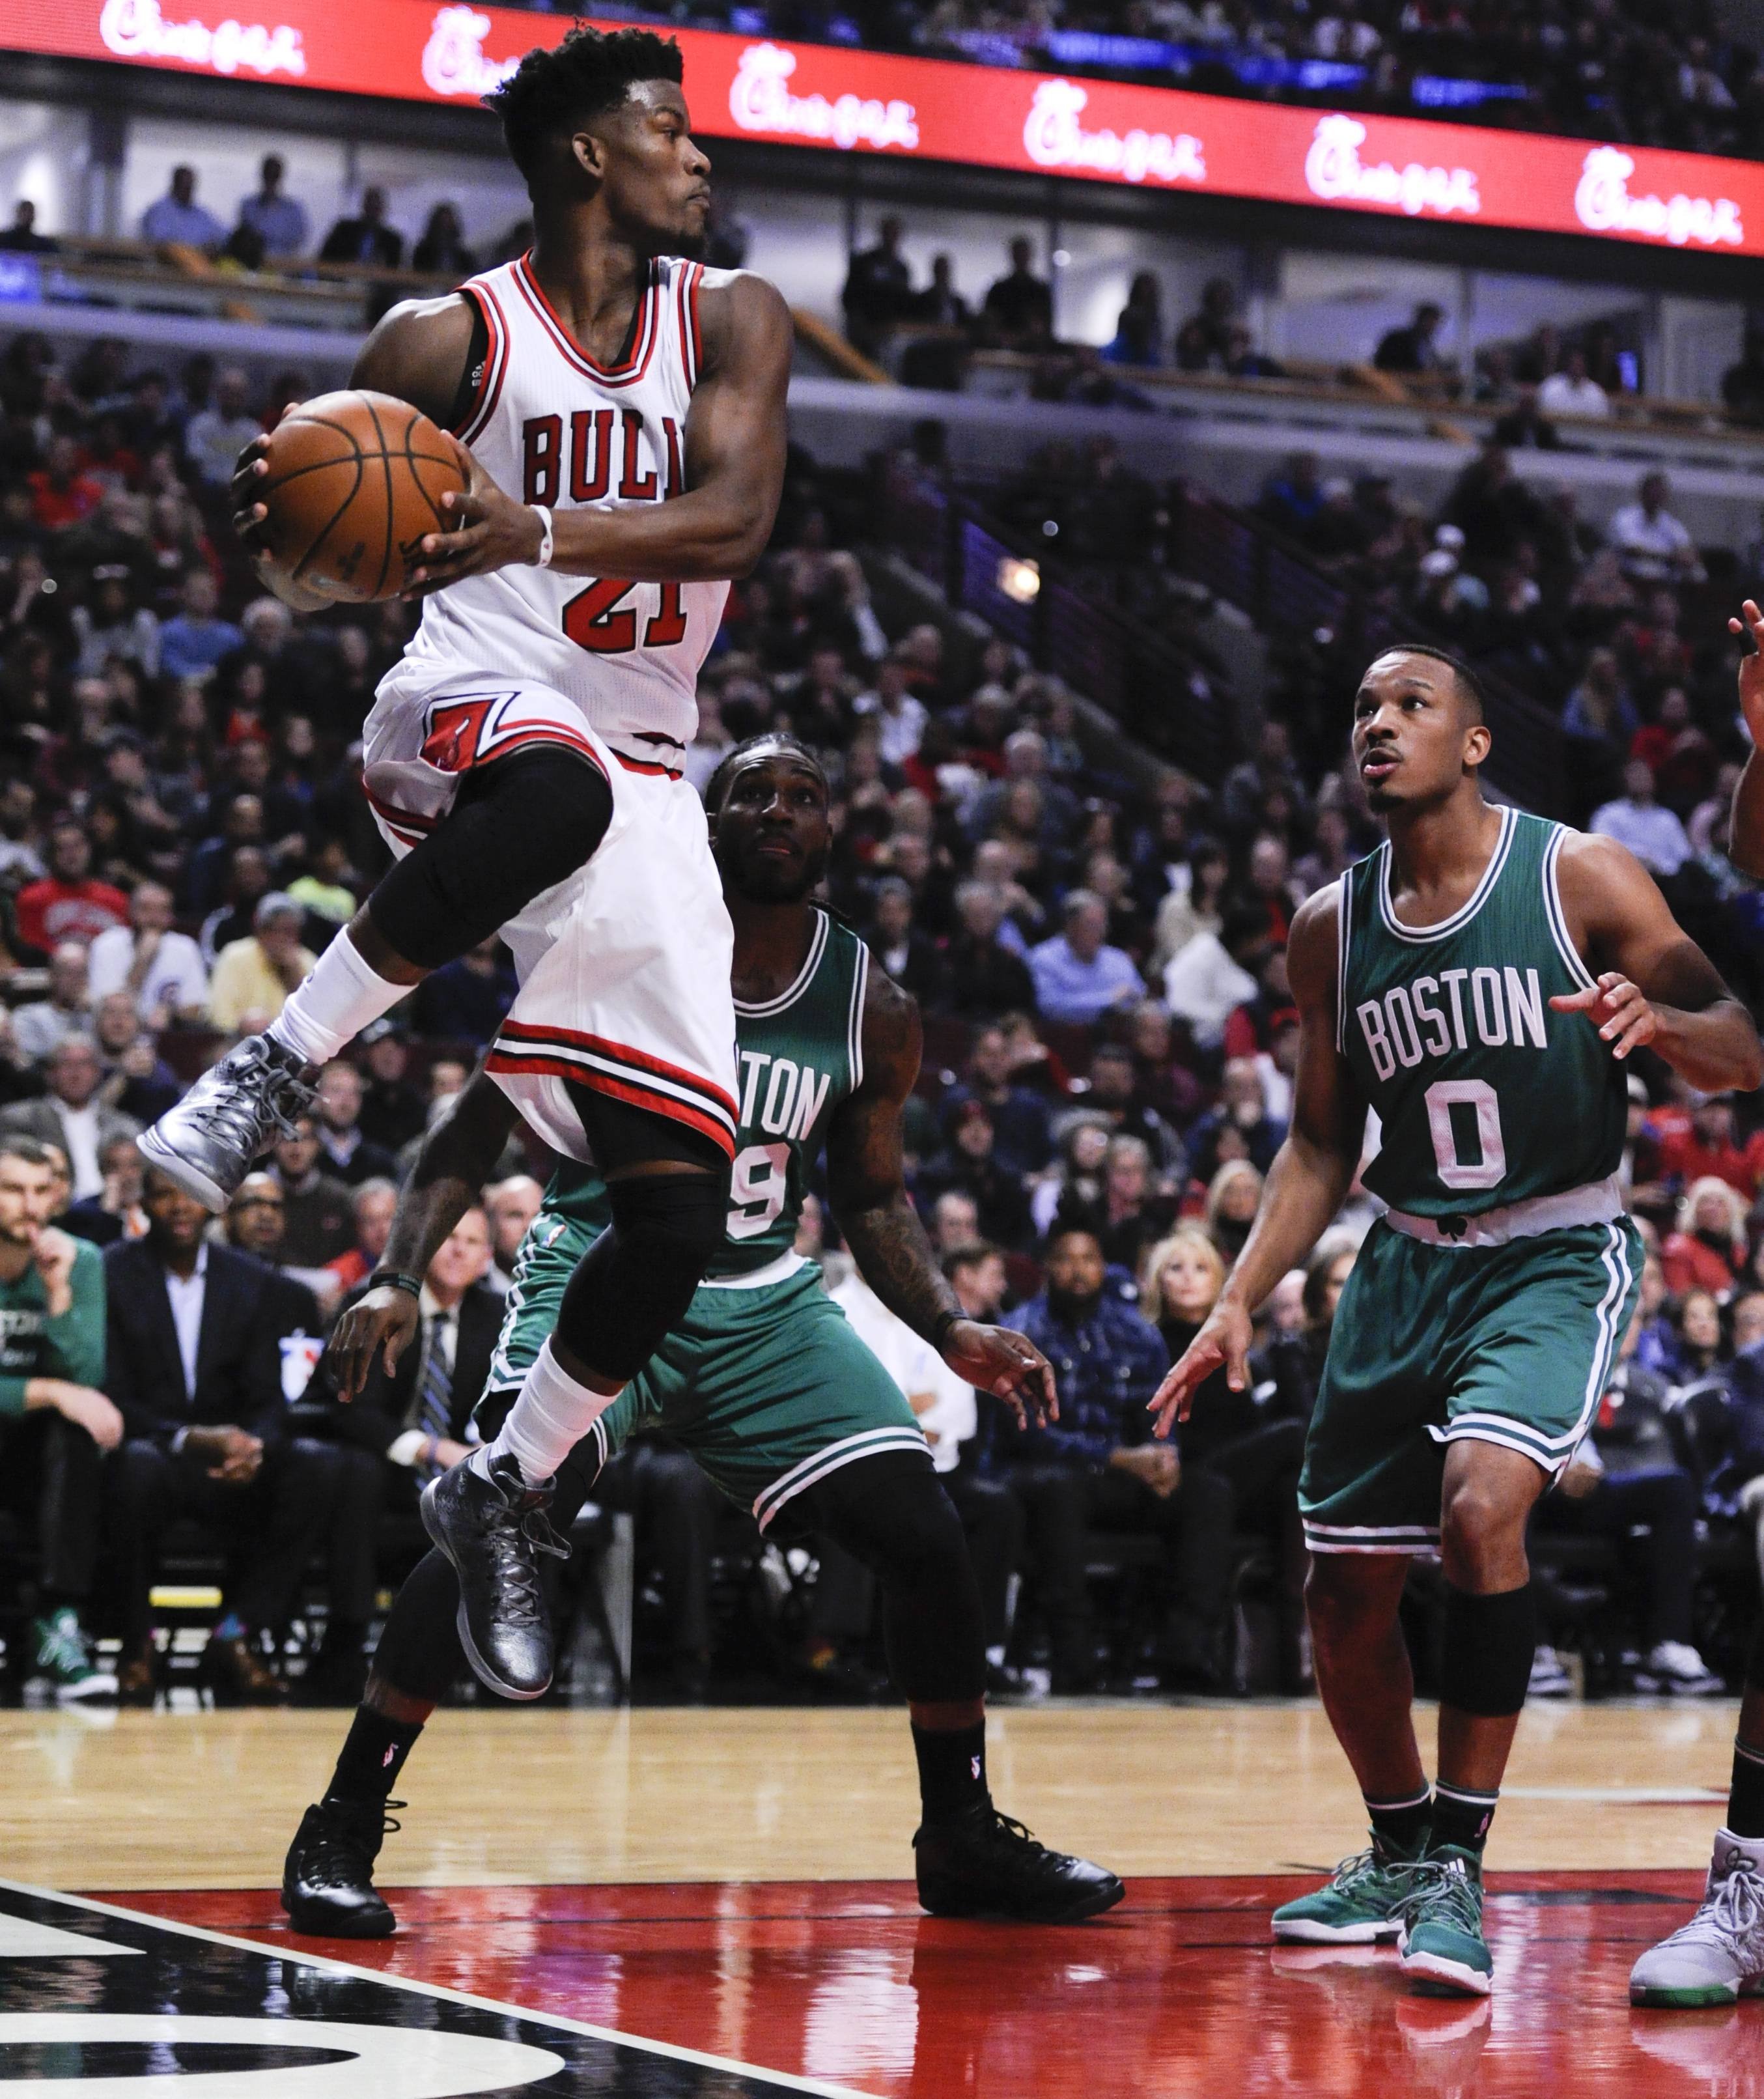 After scoring 24 points to lead the Chicago Bulls to a season-opening victory over Boston, Jimmy Butler appreciated the fight shown by his teammates, especially when Butler mixed it up with a former college teammate.